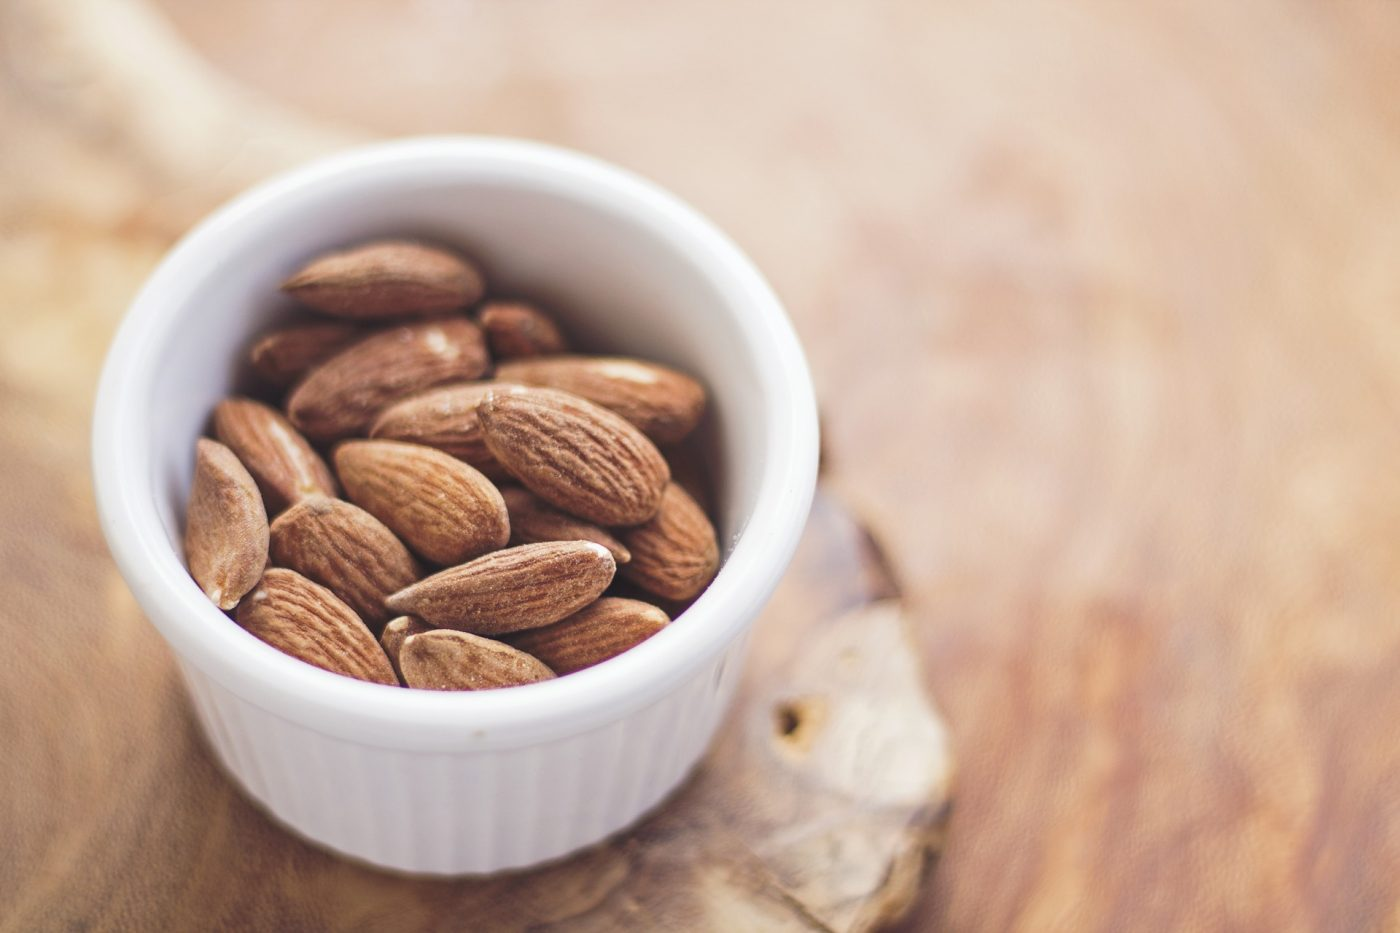 A handful of almonds make for a great healthy snack!